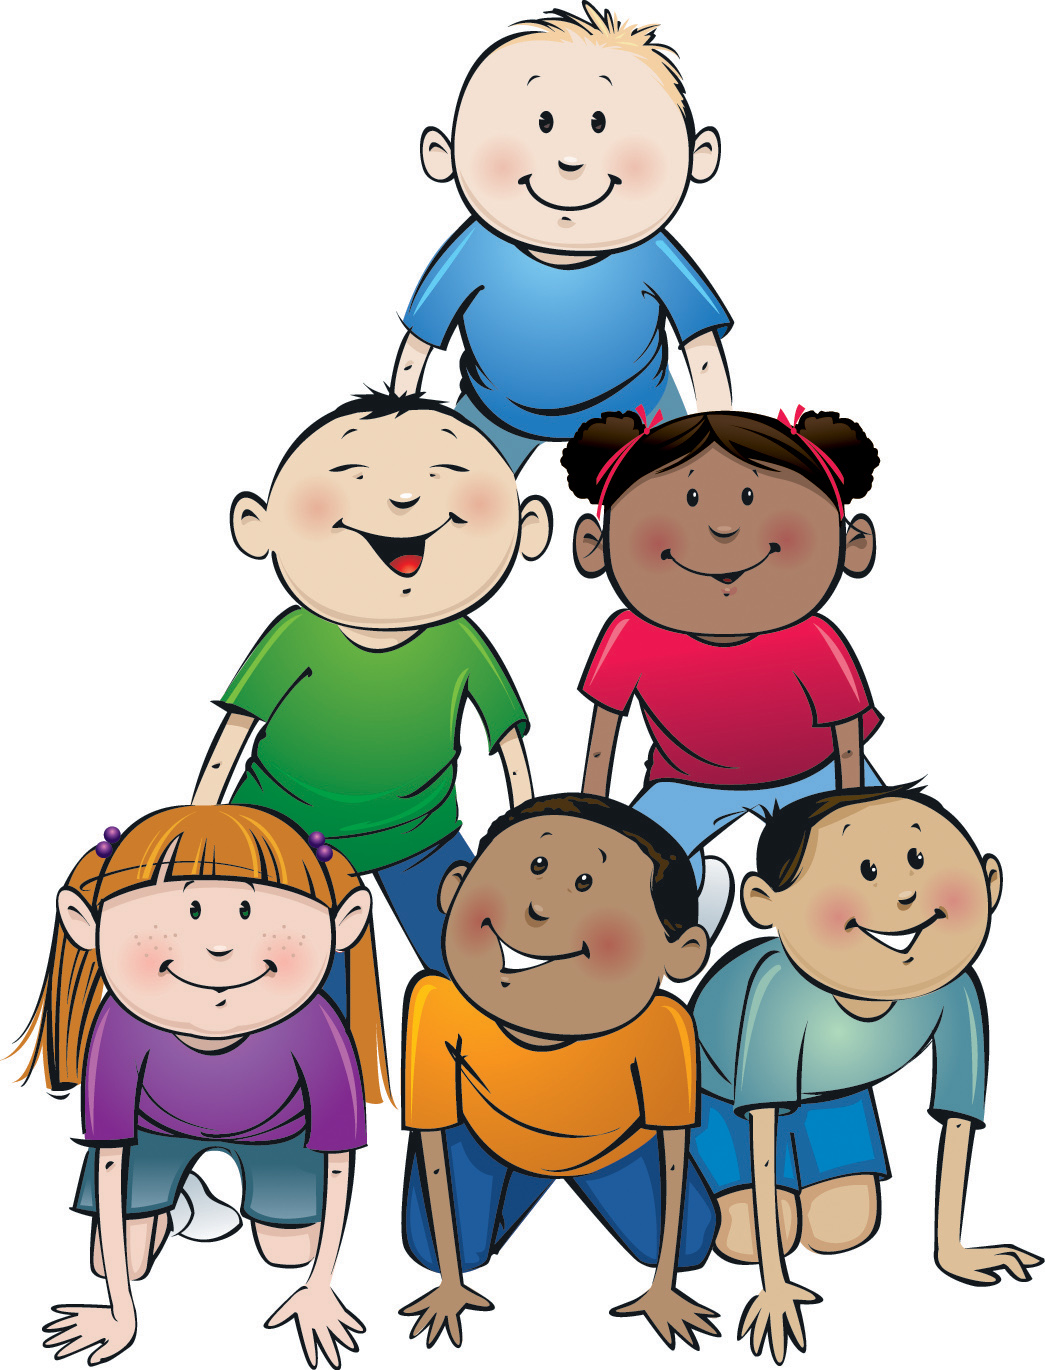 Children at getdrawings com. Sharing clipart understanding person clipart